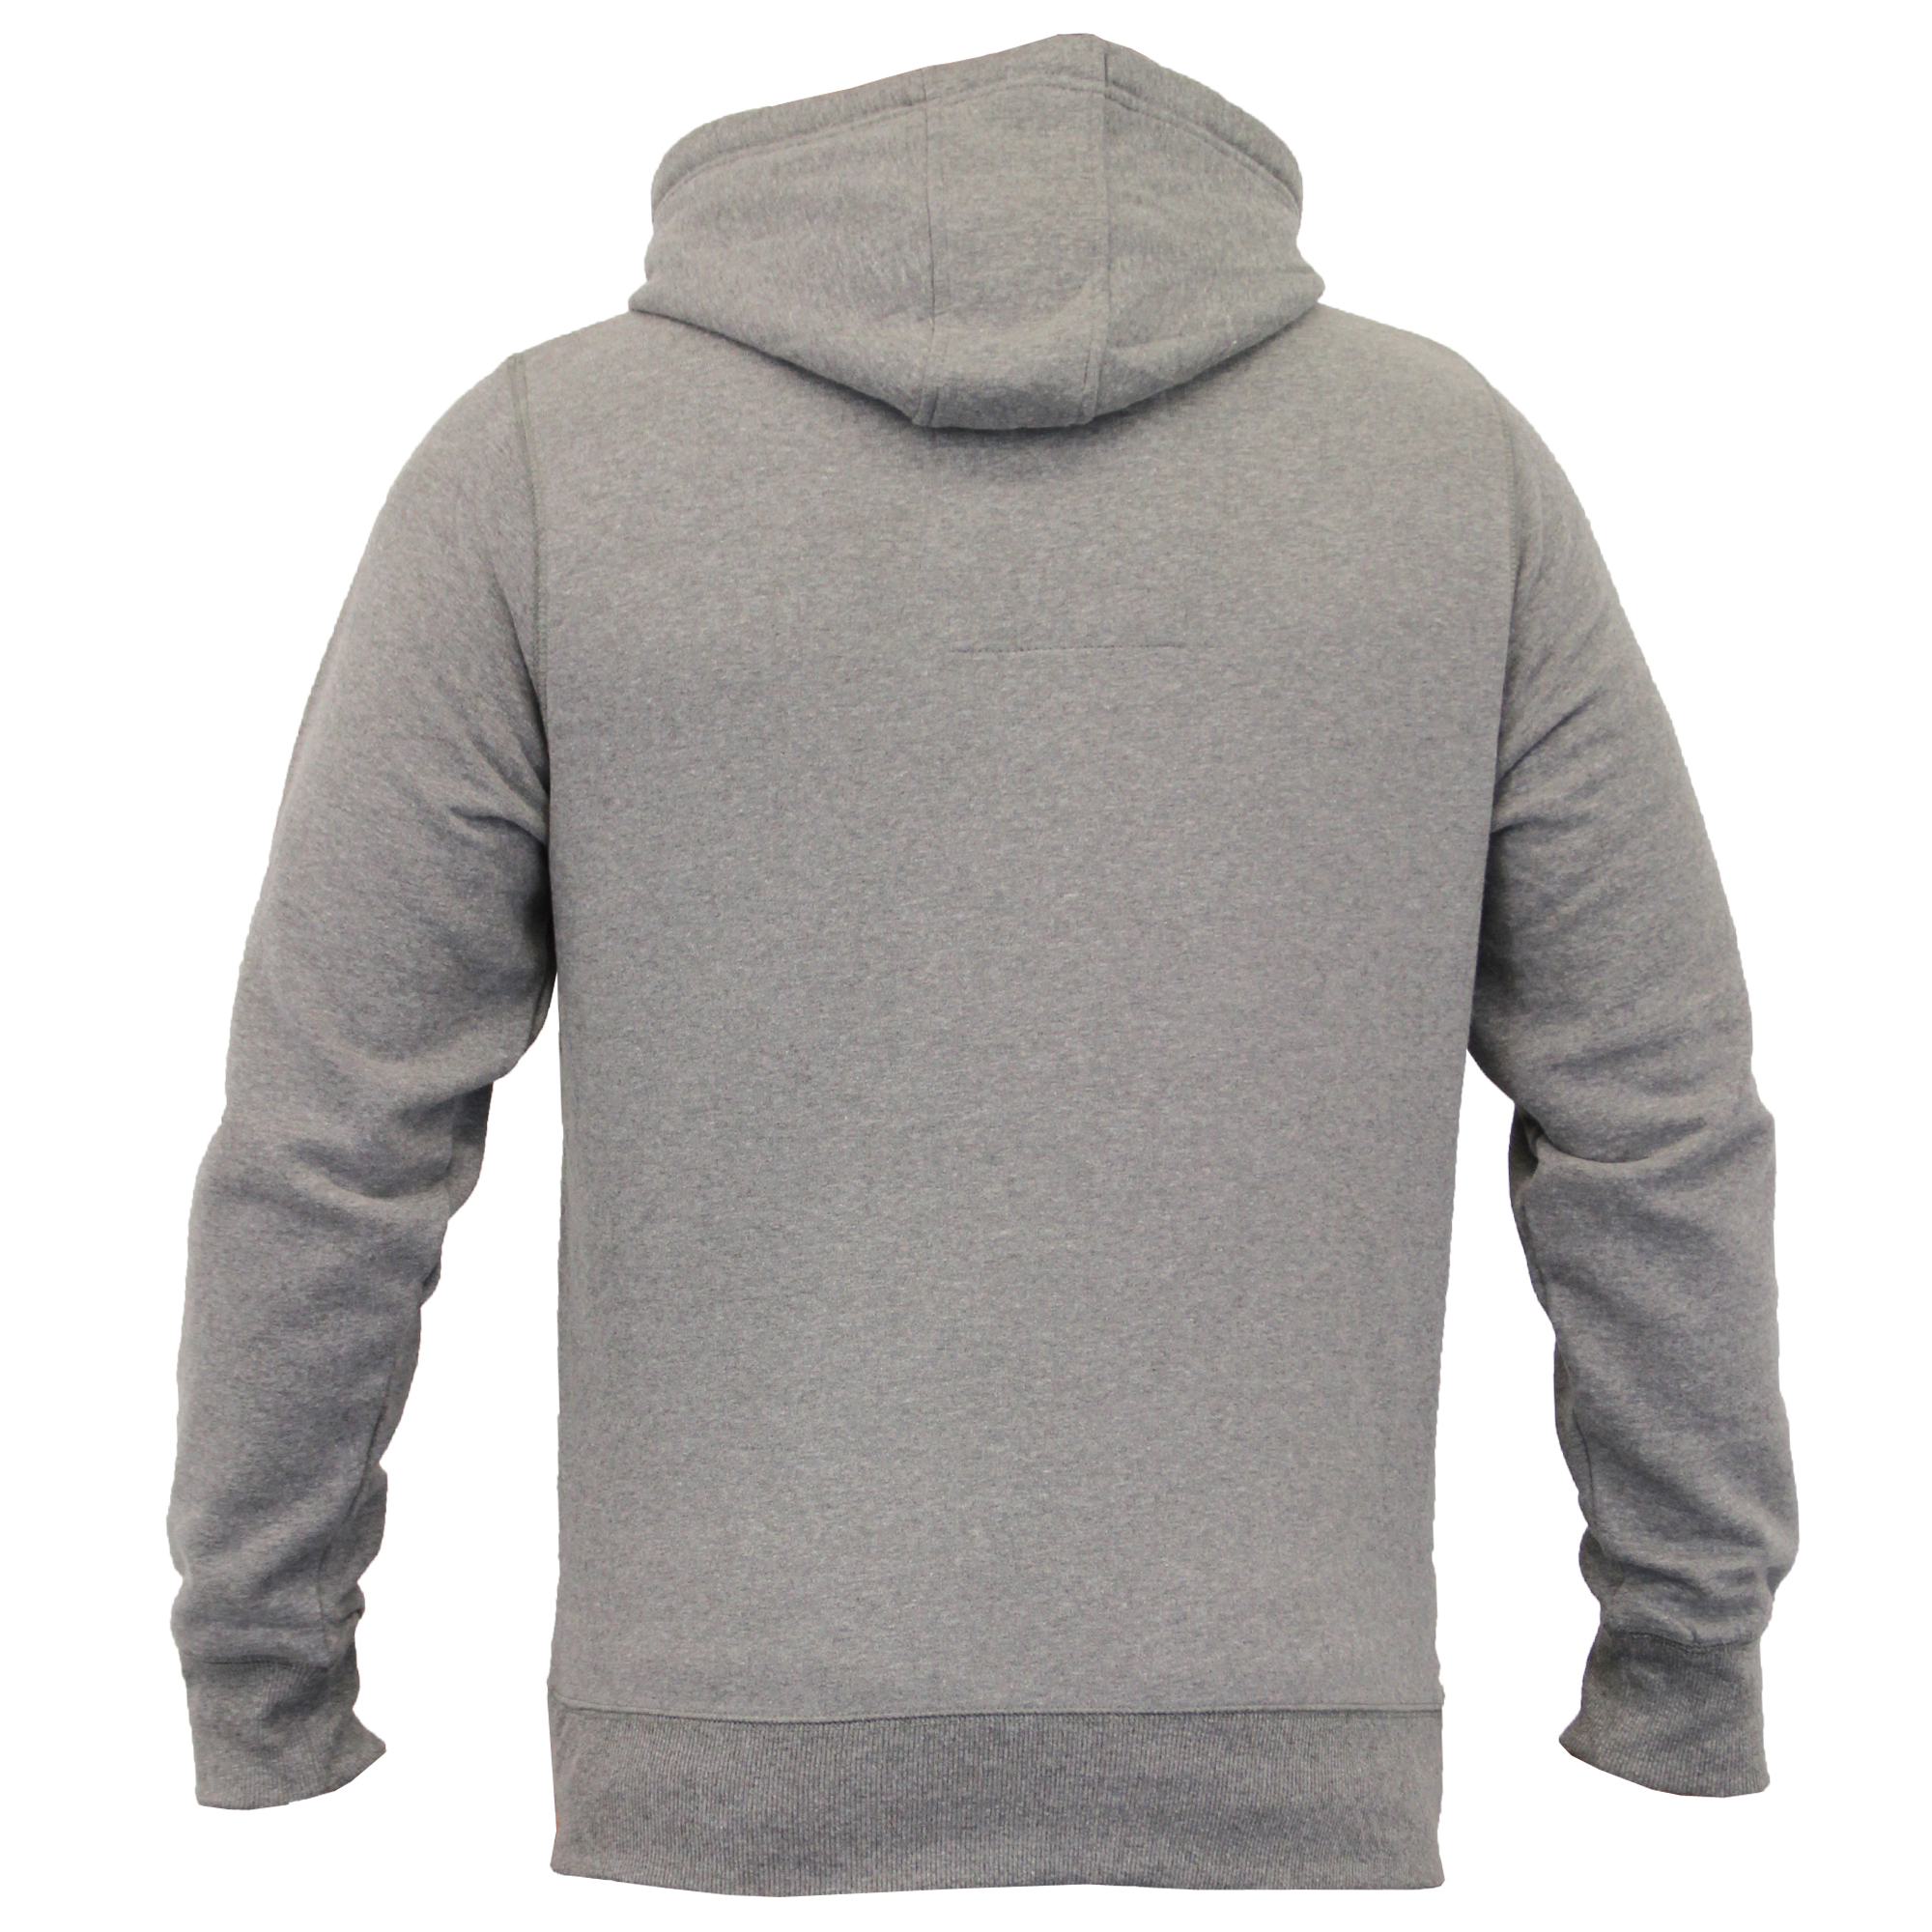 Mens-Hooded-Top-Sweatshirt-By-Tokyo-Laundry-Fleece-Lined thumbnail 19